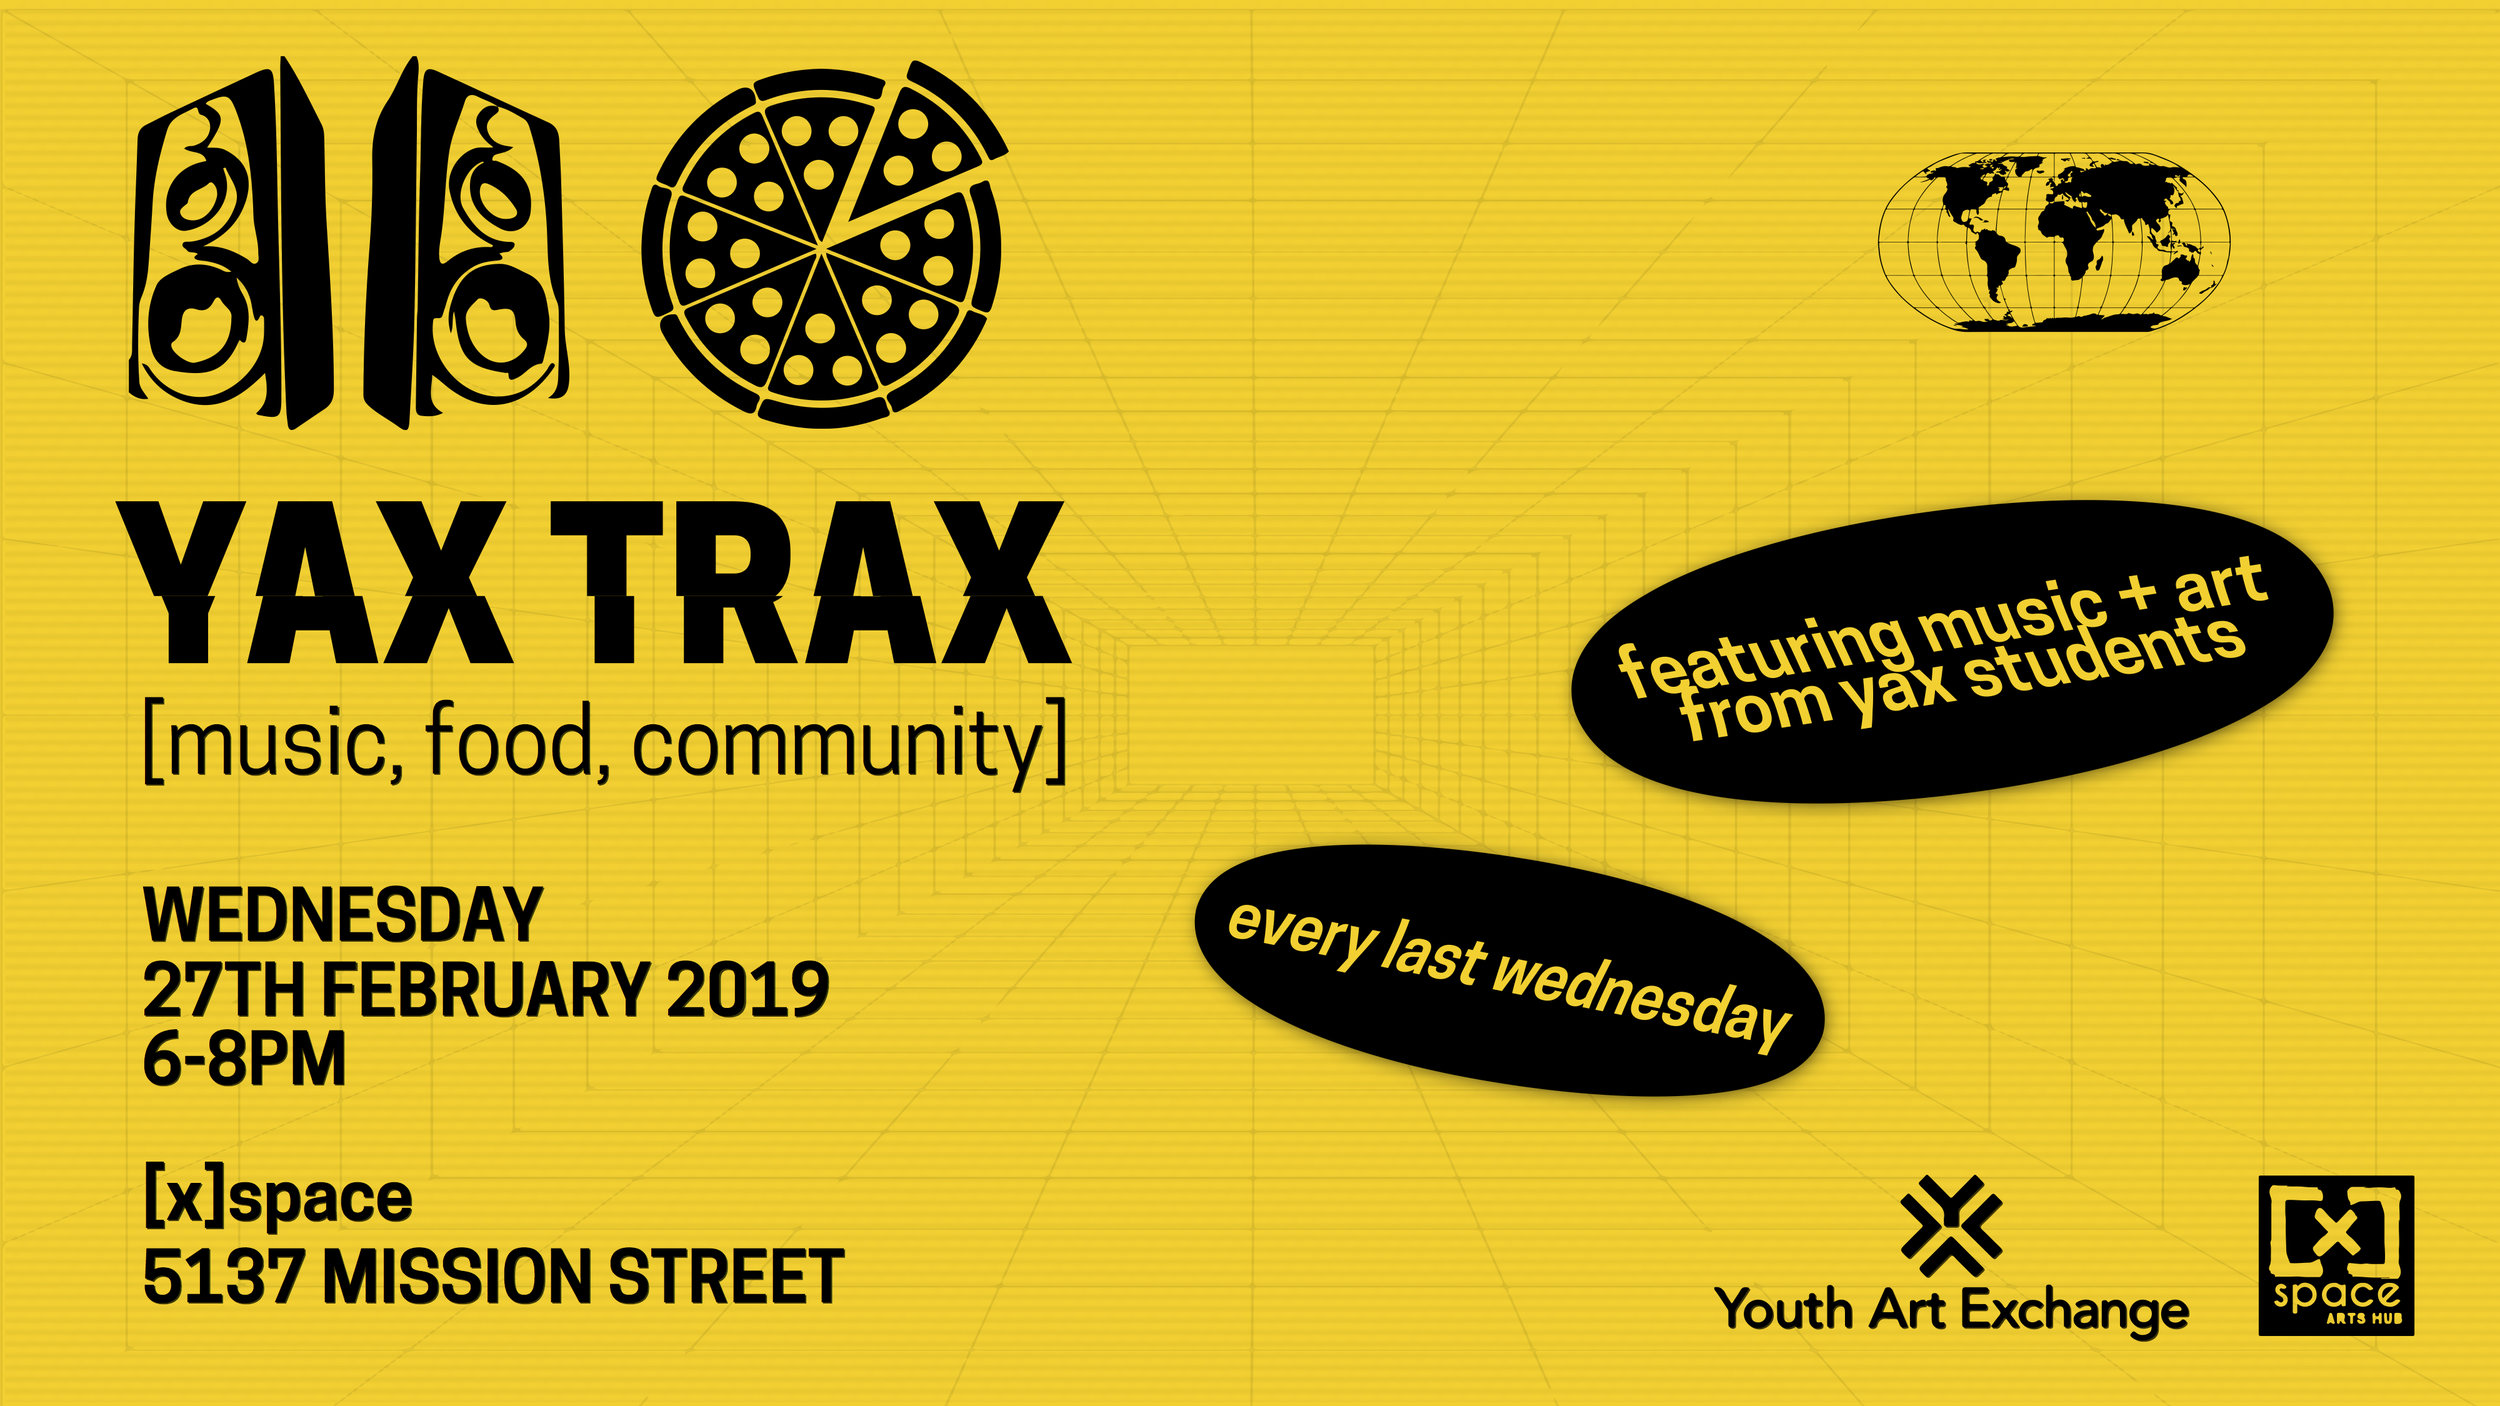 Wednesday 6 February 2019 Yax Trax February 2019 Youth Art Exchange